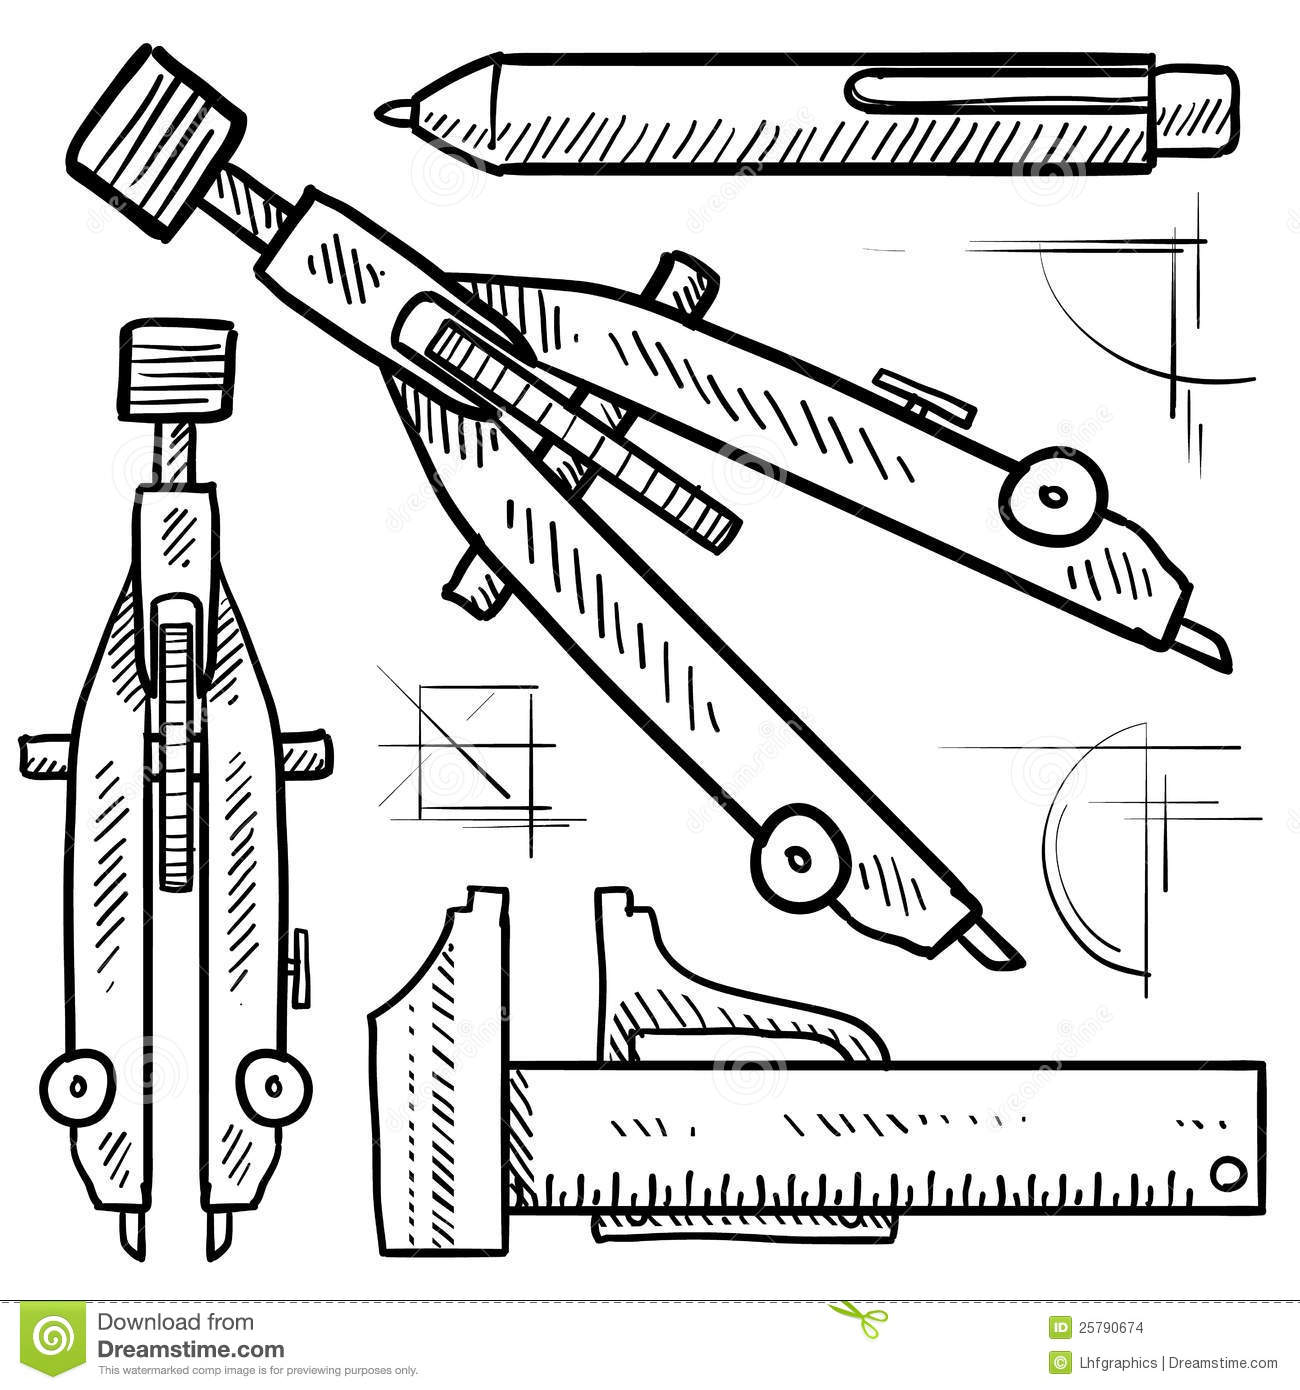 Drafting And Architectural Tools Sketch Stock Vector